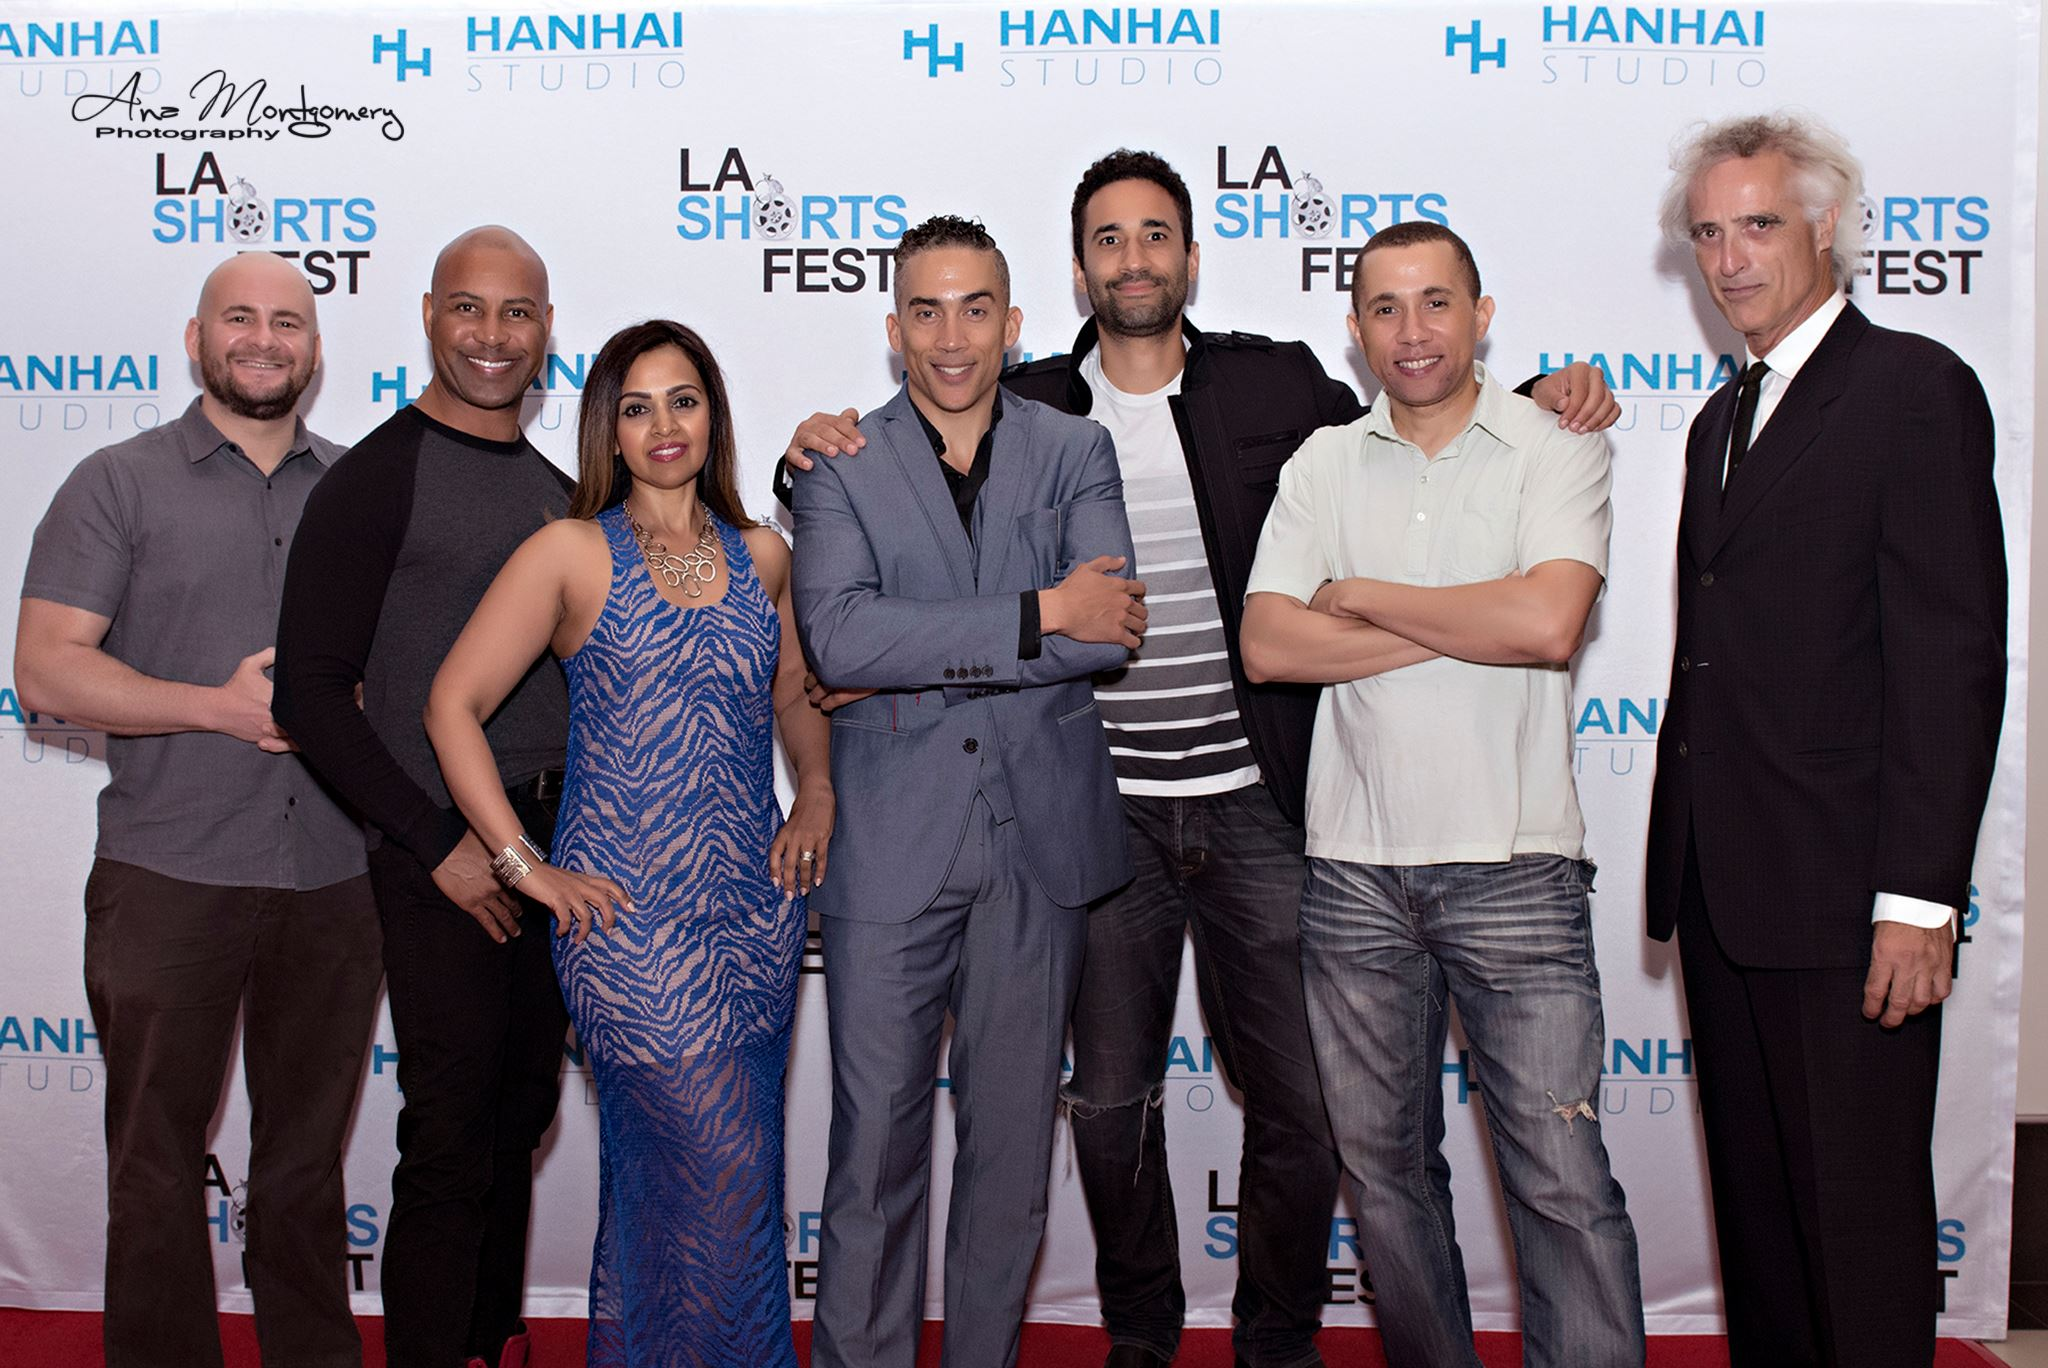 """Daniel Lawrence Abrams at the 2016 LA Shorts Fest (co-produced The Derrick  Brothers' film """"Architects of Crime""""). Also pictured the team: Hilliard Guess, Indra Bartona, William A. Derrick III, Ko Massiah, Christopher B. Derrick, Peter Lucas."""